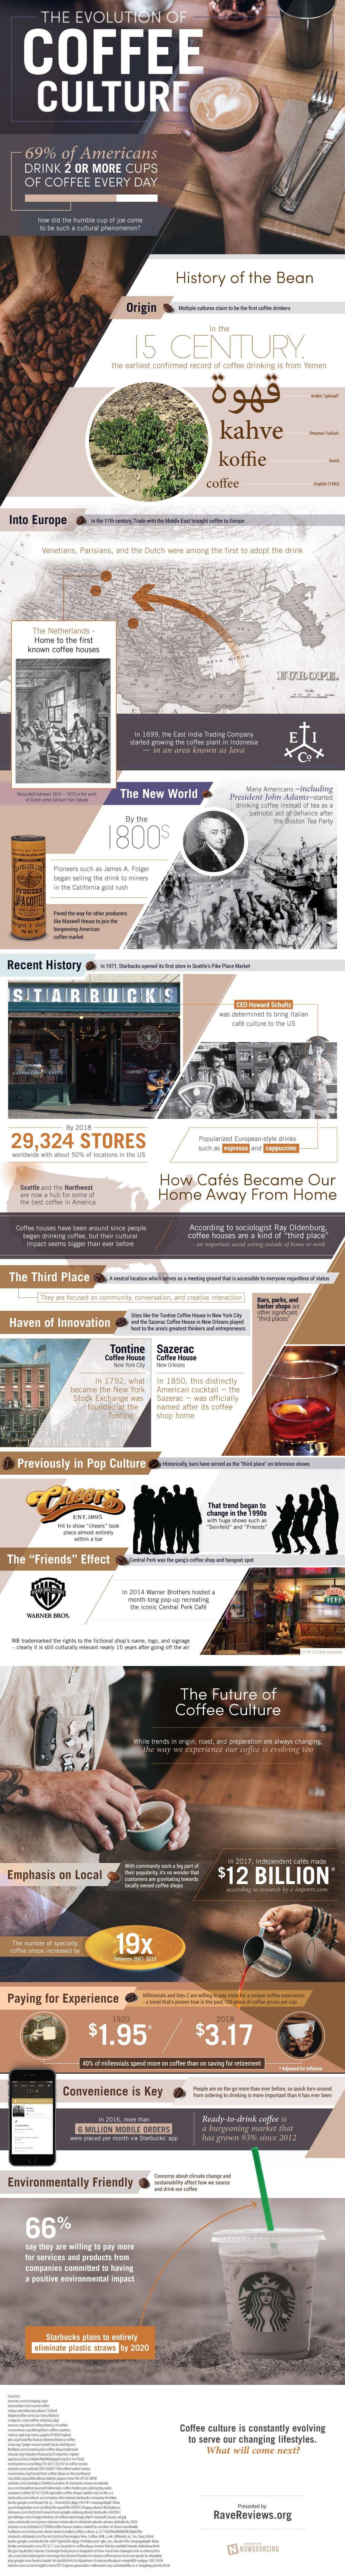 Evolution Of Coffee Culture IG